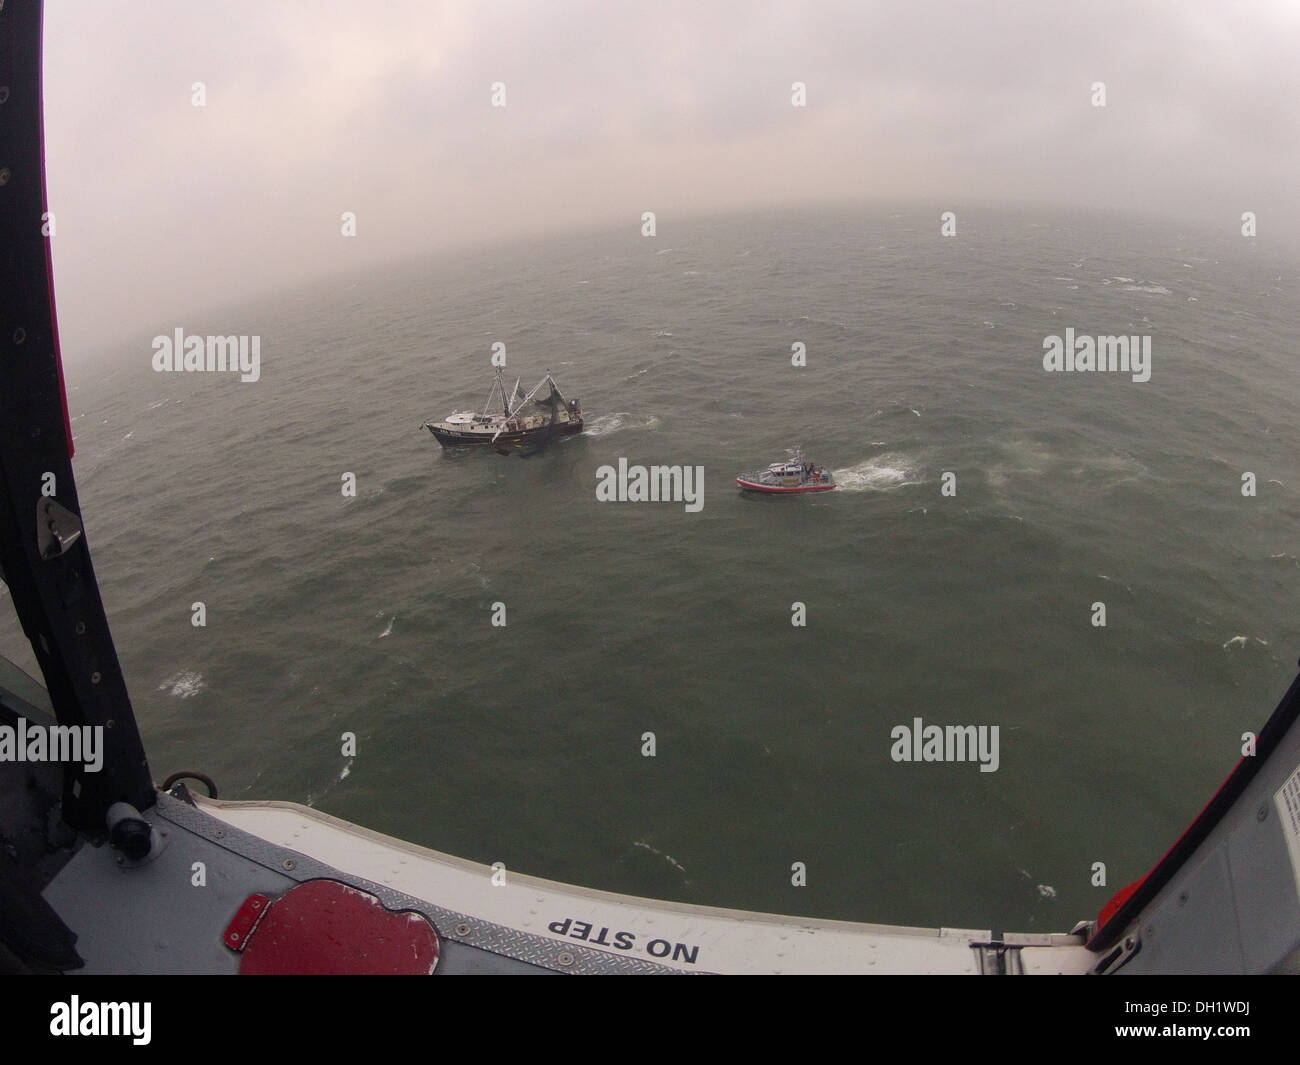 A Coast Guard boatcrew aboard a 45-foot Response Boat - Medium from Station Mayport in Atlantic Beach, Fla., is on scene 2 miles off Ponte Vedra, Fla., with the 88-foot shrimp boat Sea King, which began taking on water with four people aboard Tuesday, Oct - Stock Image